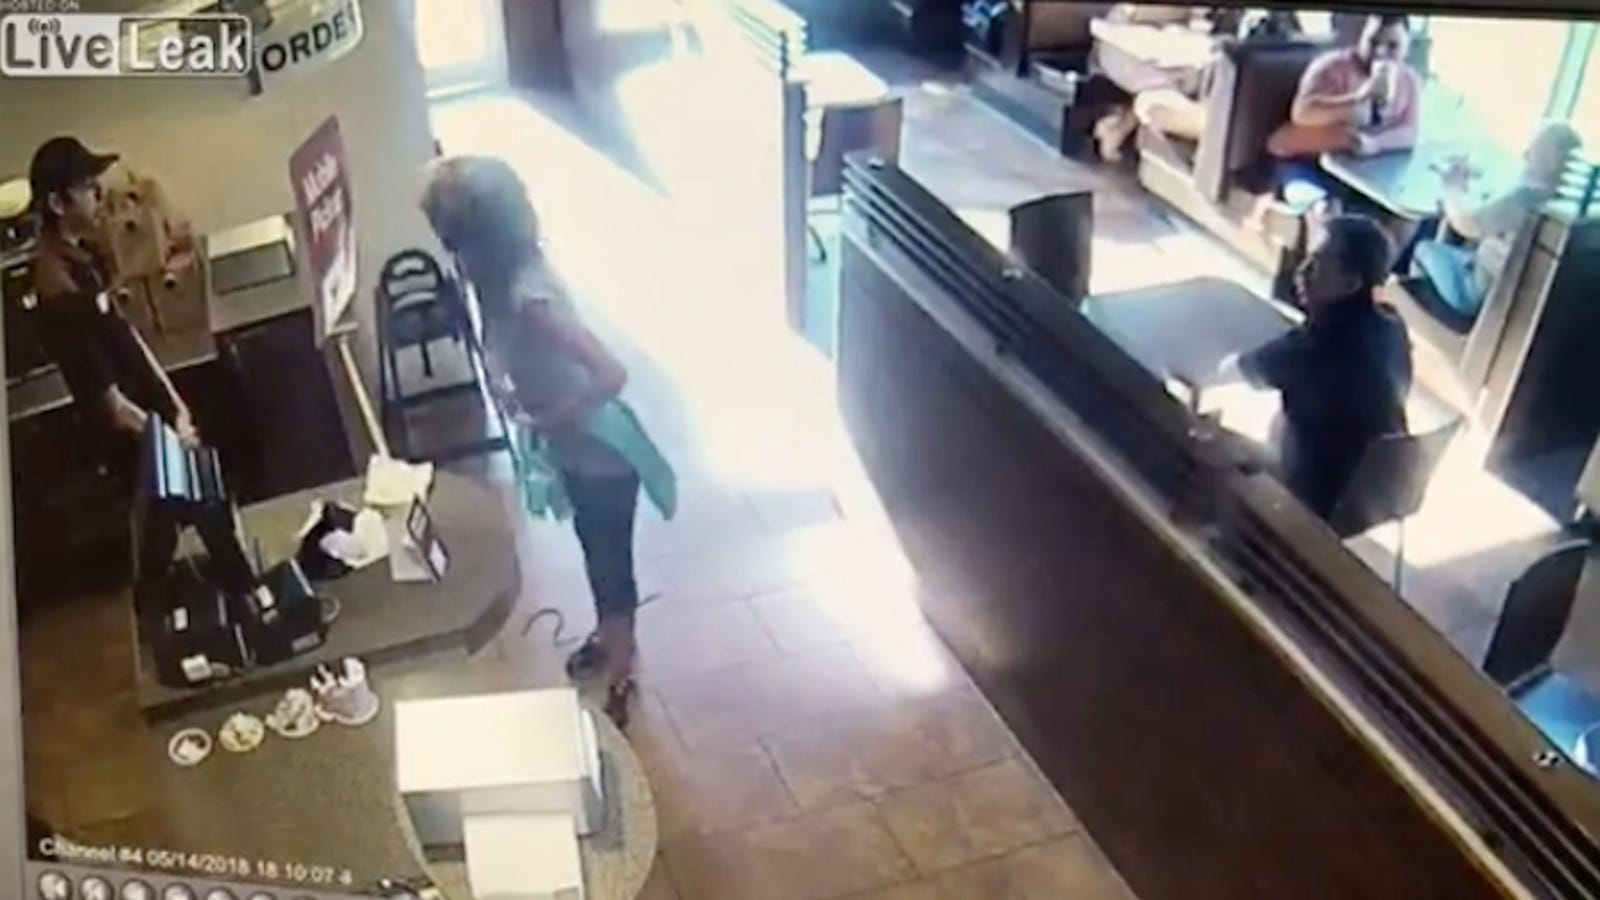 Woman Furiously Shits On Floor Of Tim Hortons, Throws It At Employees